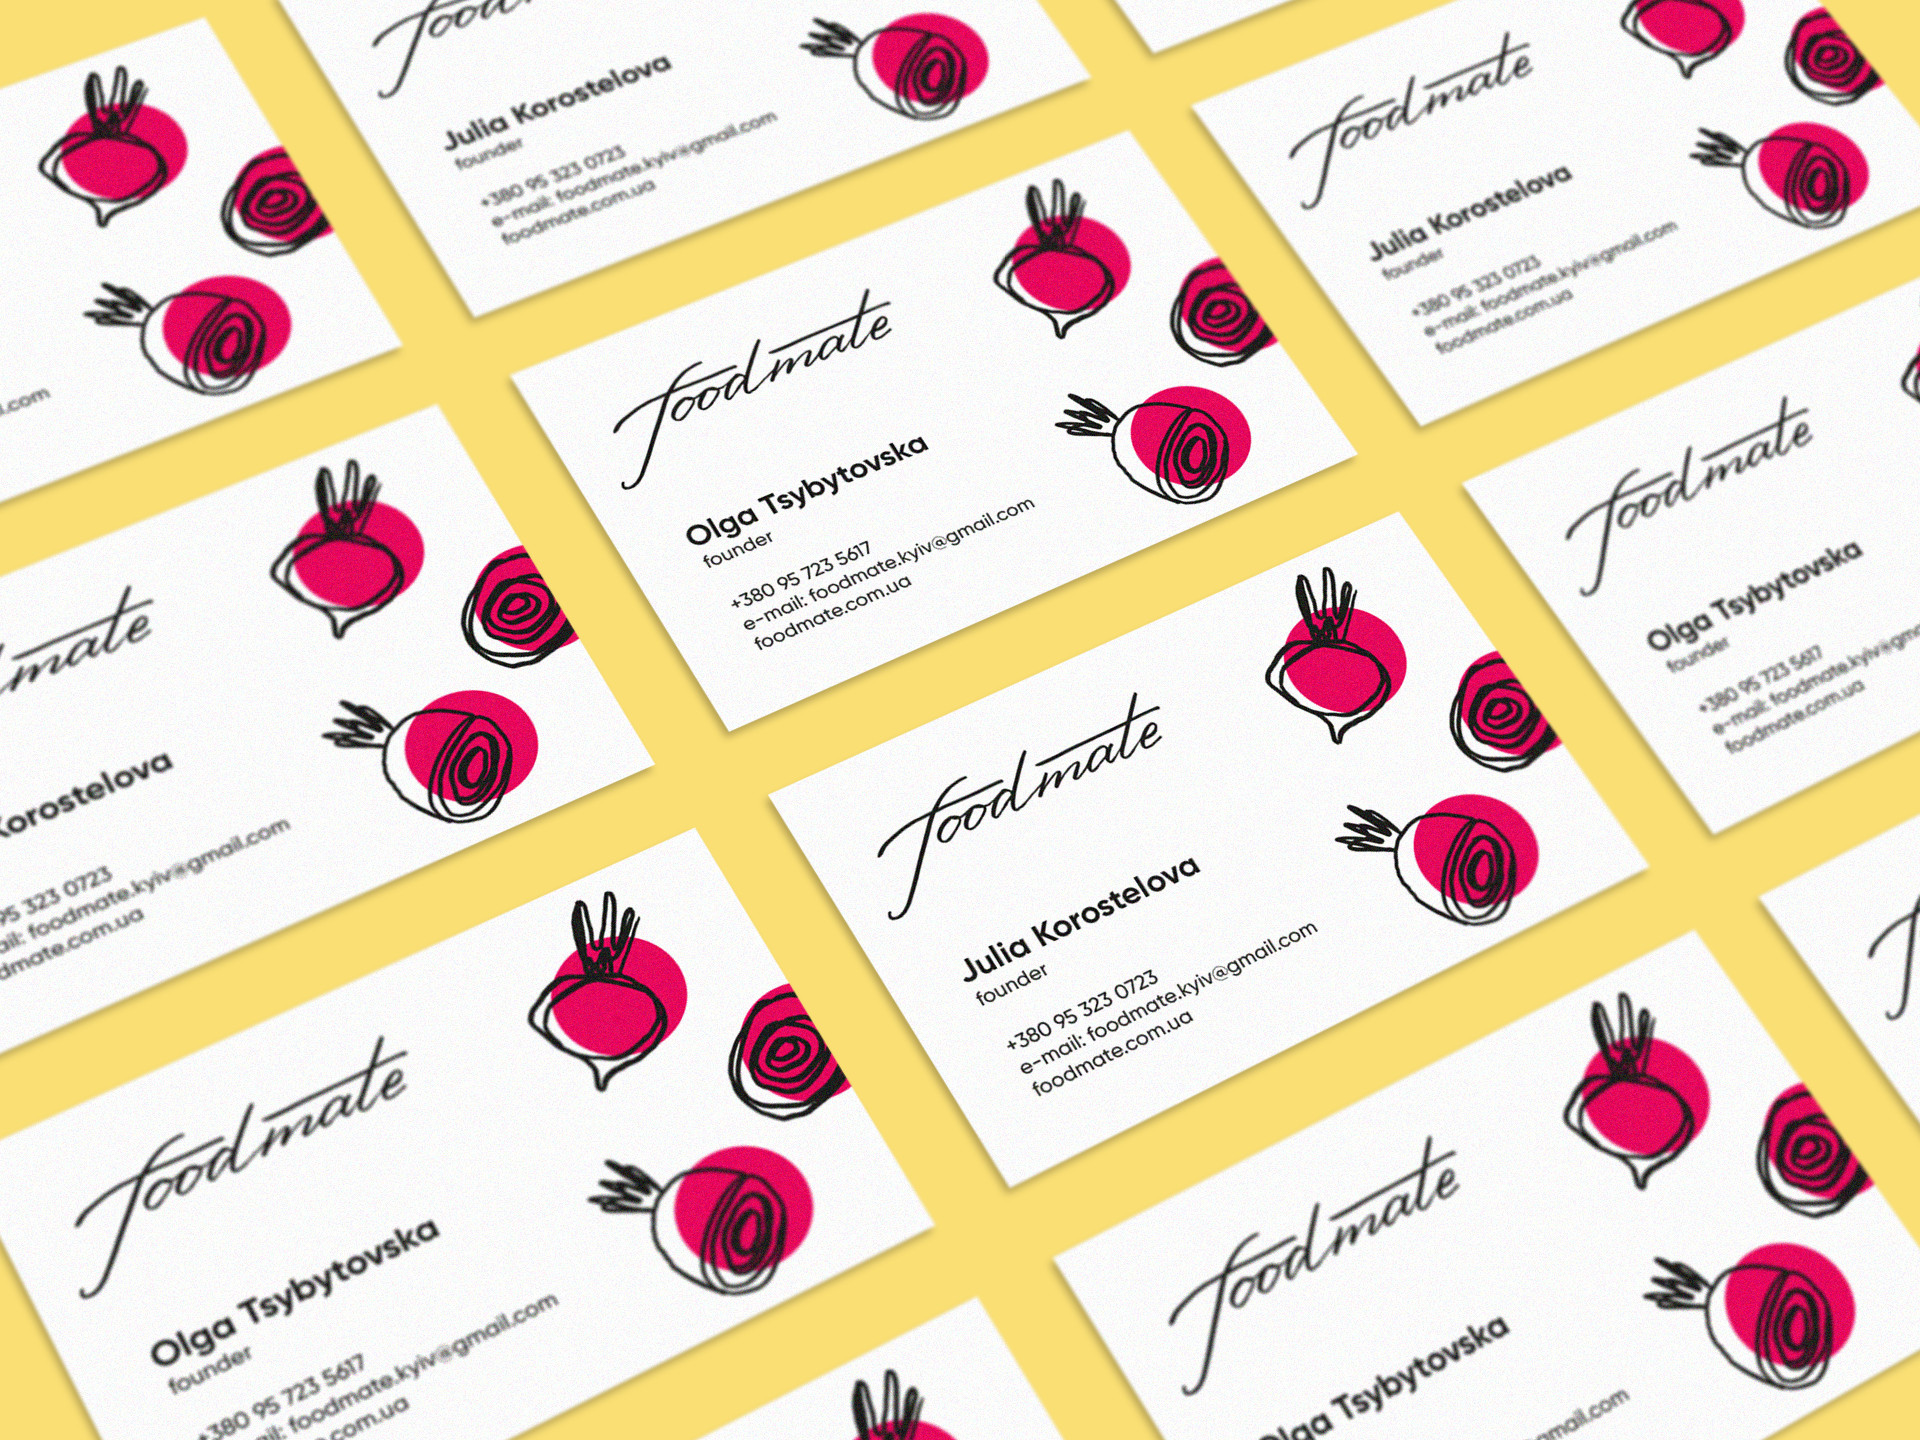 Business cards for foodmate